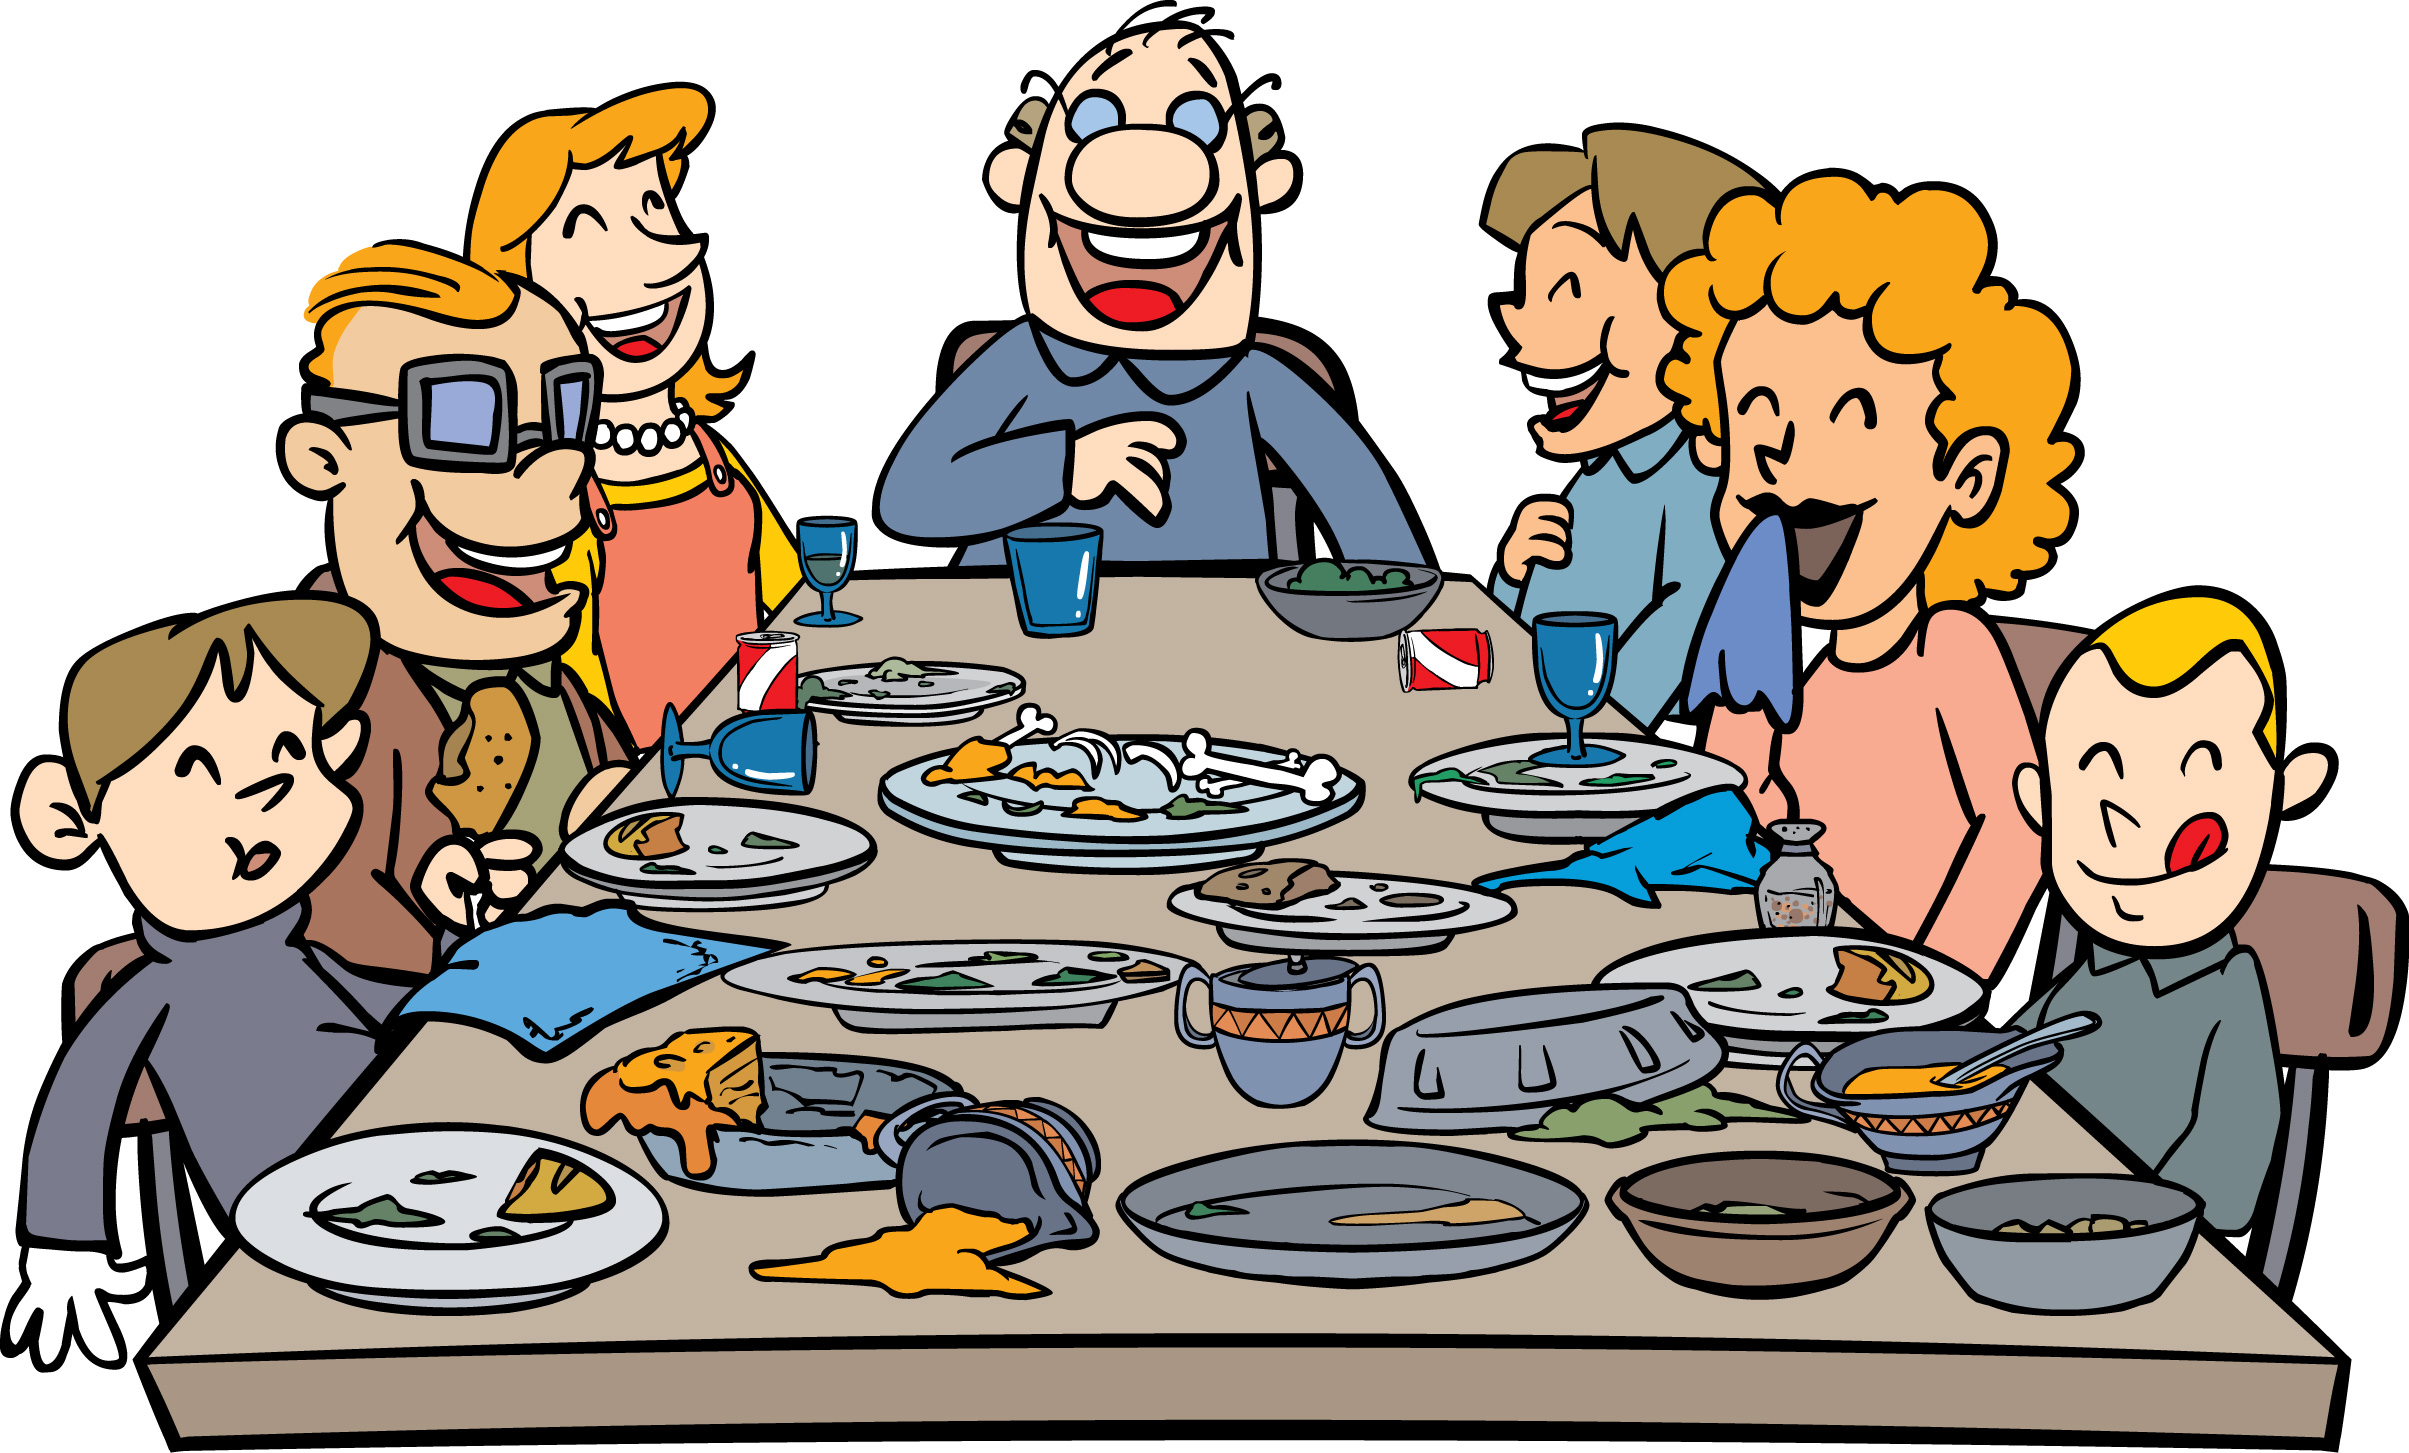 Feast clipart team dinner. Free holiday dining cliparts